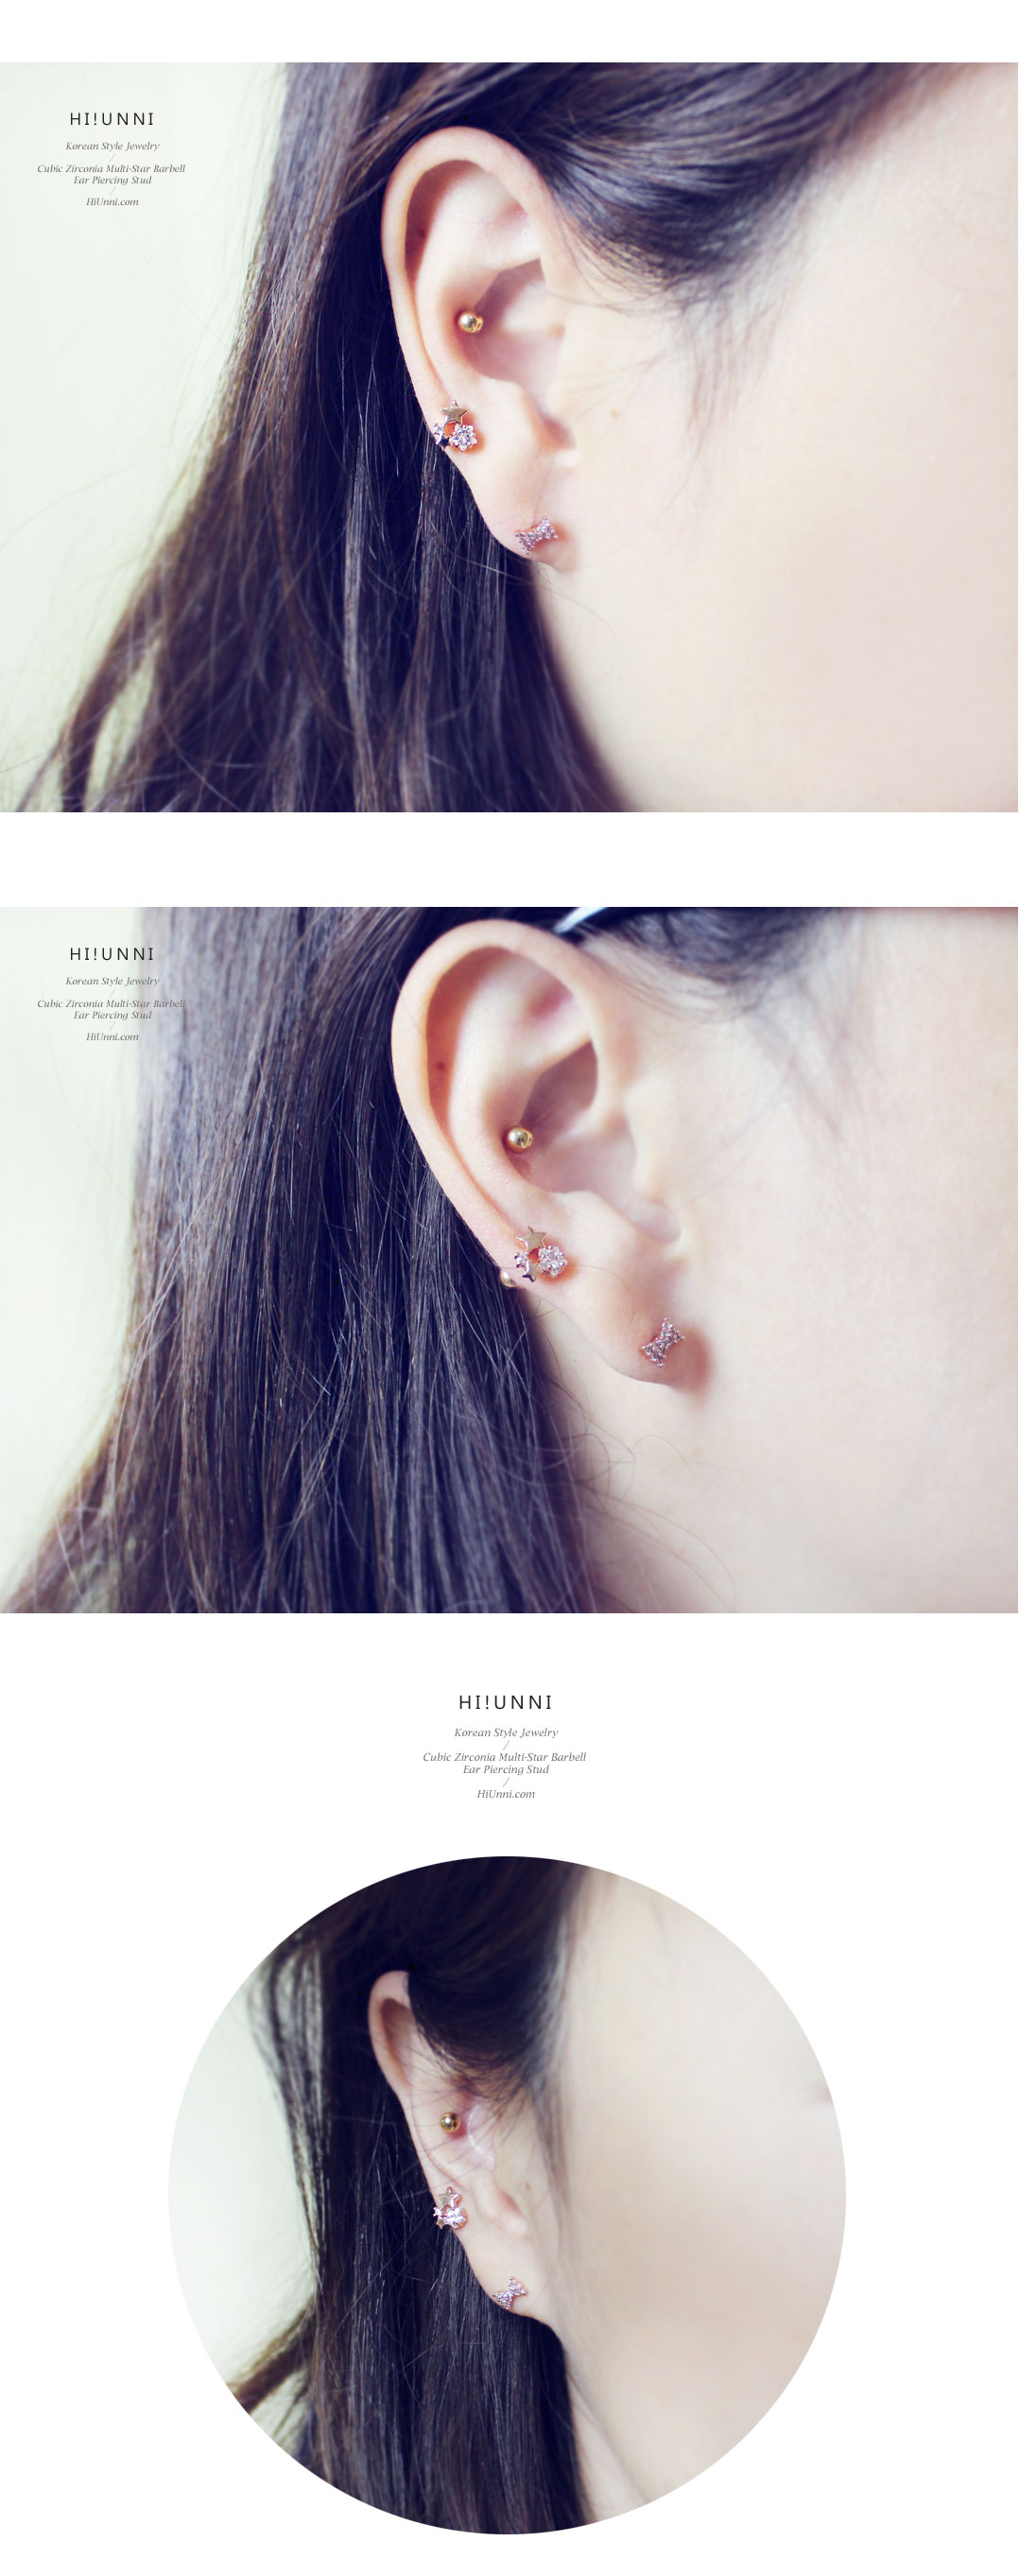 ear_studs_piercing_Cartilage_earrings_16g_316l_Surgical_Stainless_Steel_korean_asian_style_jewelry_barbell_cubic_zirconia_cz_star_6